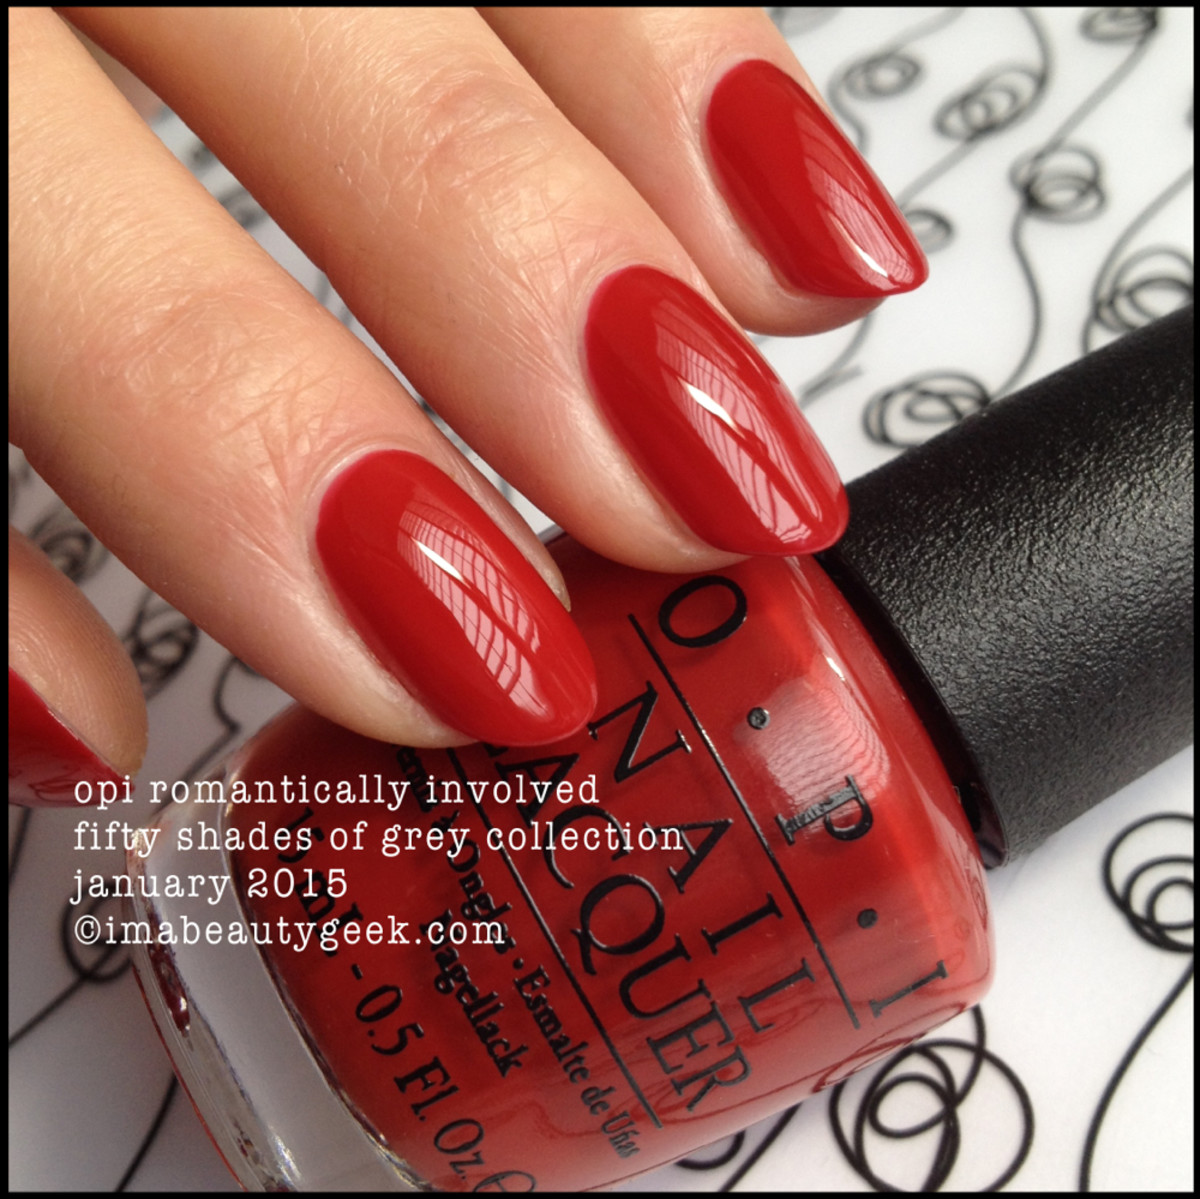 OPI Romantically Involved 50 Shades